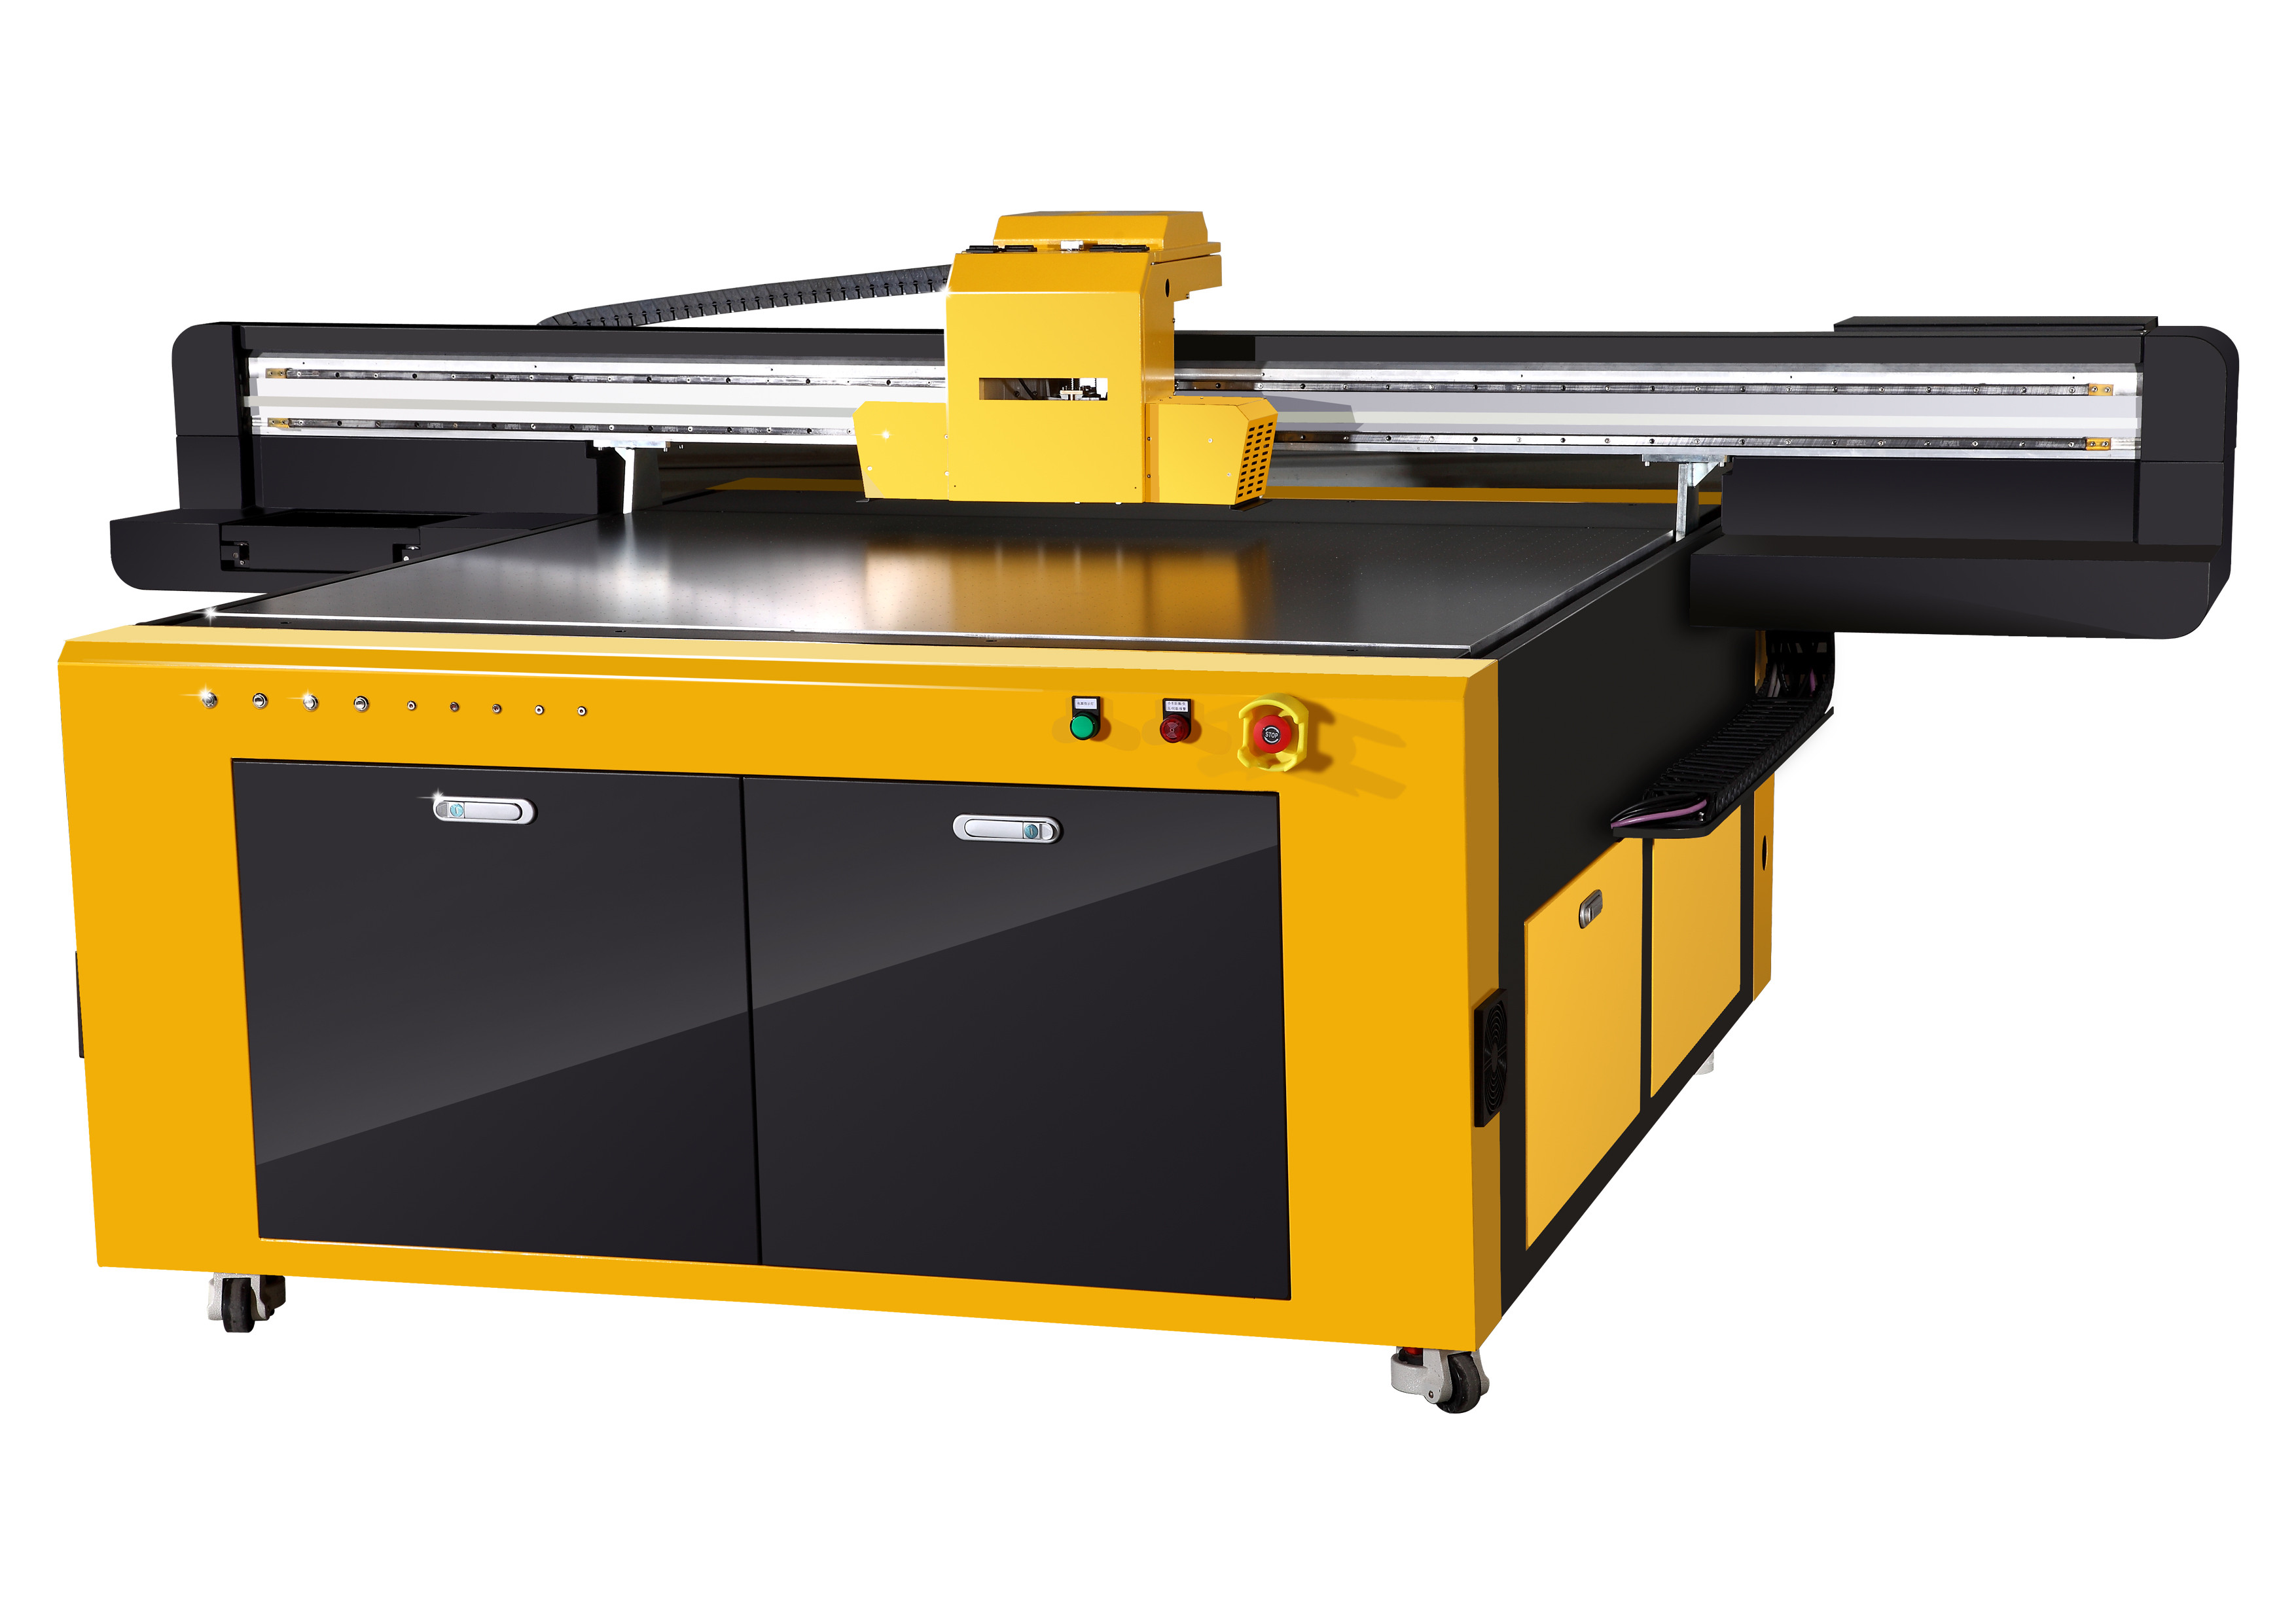 2.5x1.3m UV Flatbed Printing Machine for Plexiglas,Acrylic Sheet,Glass RICOH GEN4/GEN5